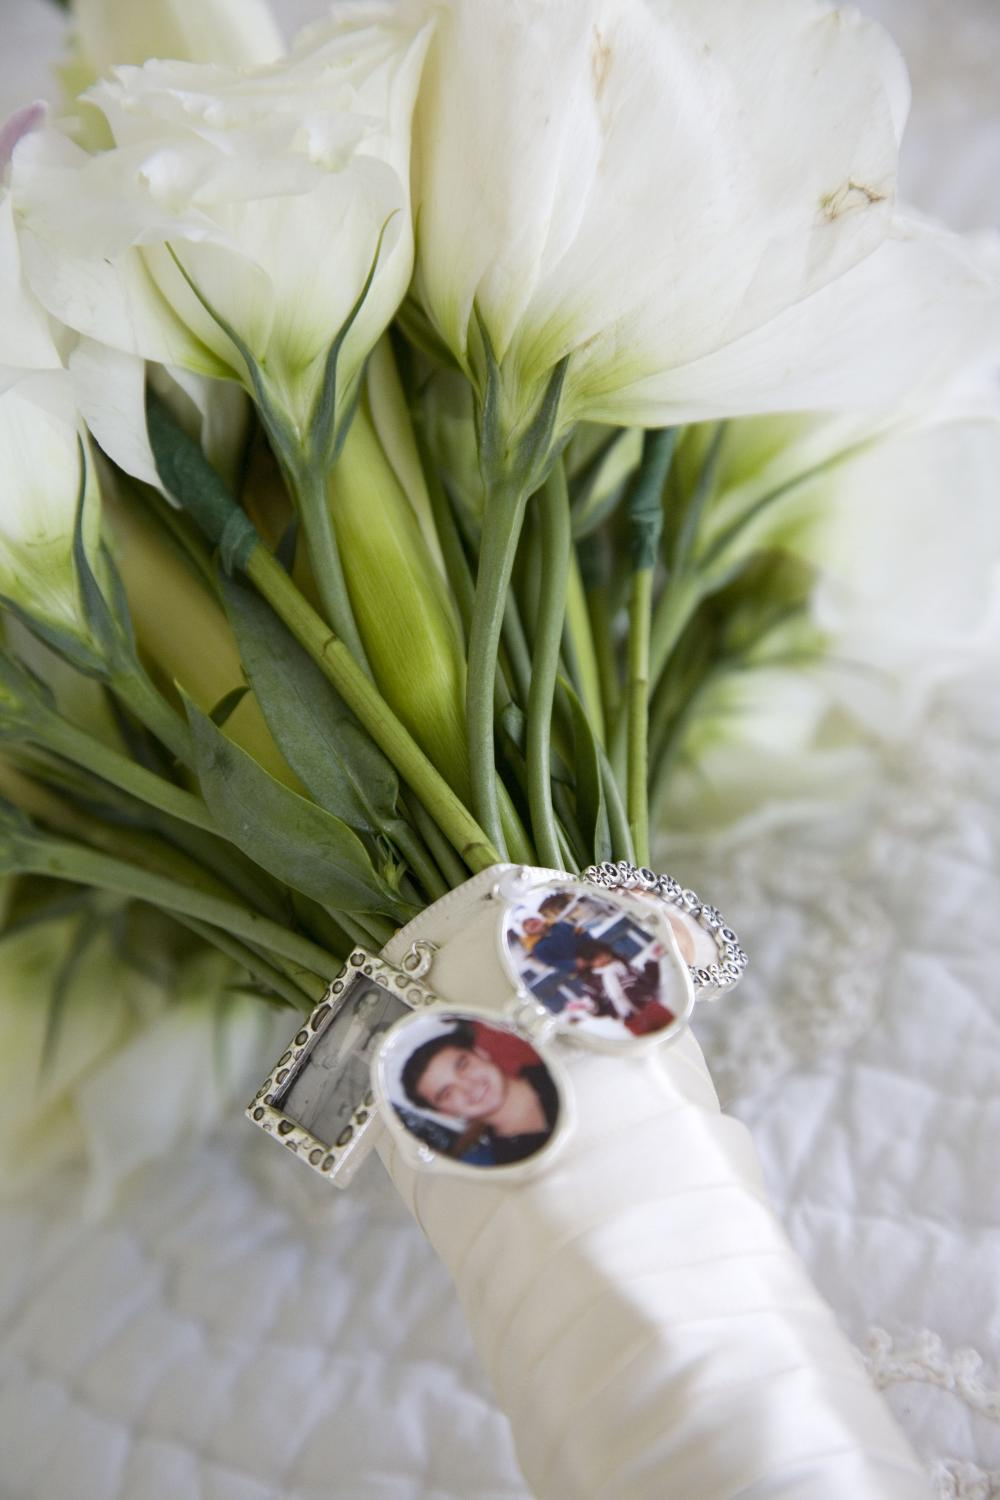 I struggled to find a way to honor my deceased brother, my fiance's mother and my grandparents. This ended up being perfect! I loved it. the locket with the photo of my brother closed up. It was very sweet!